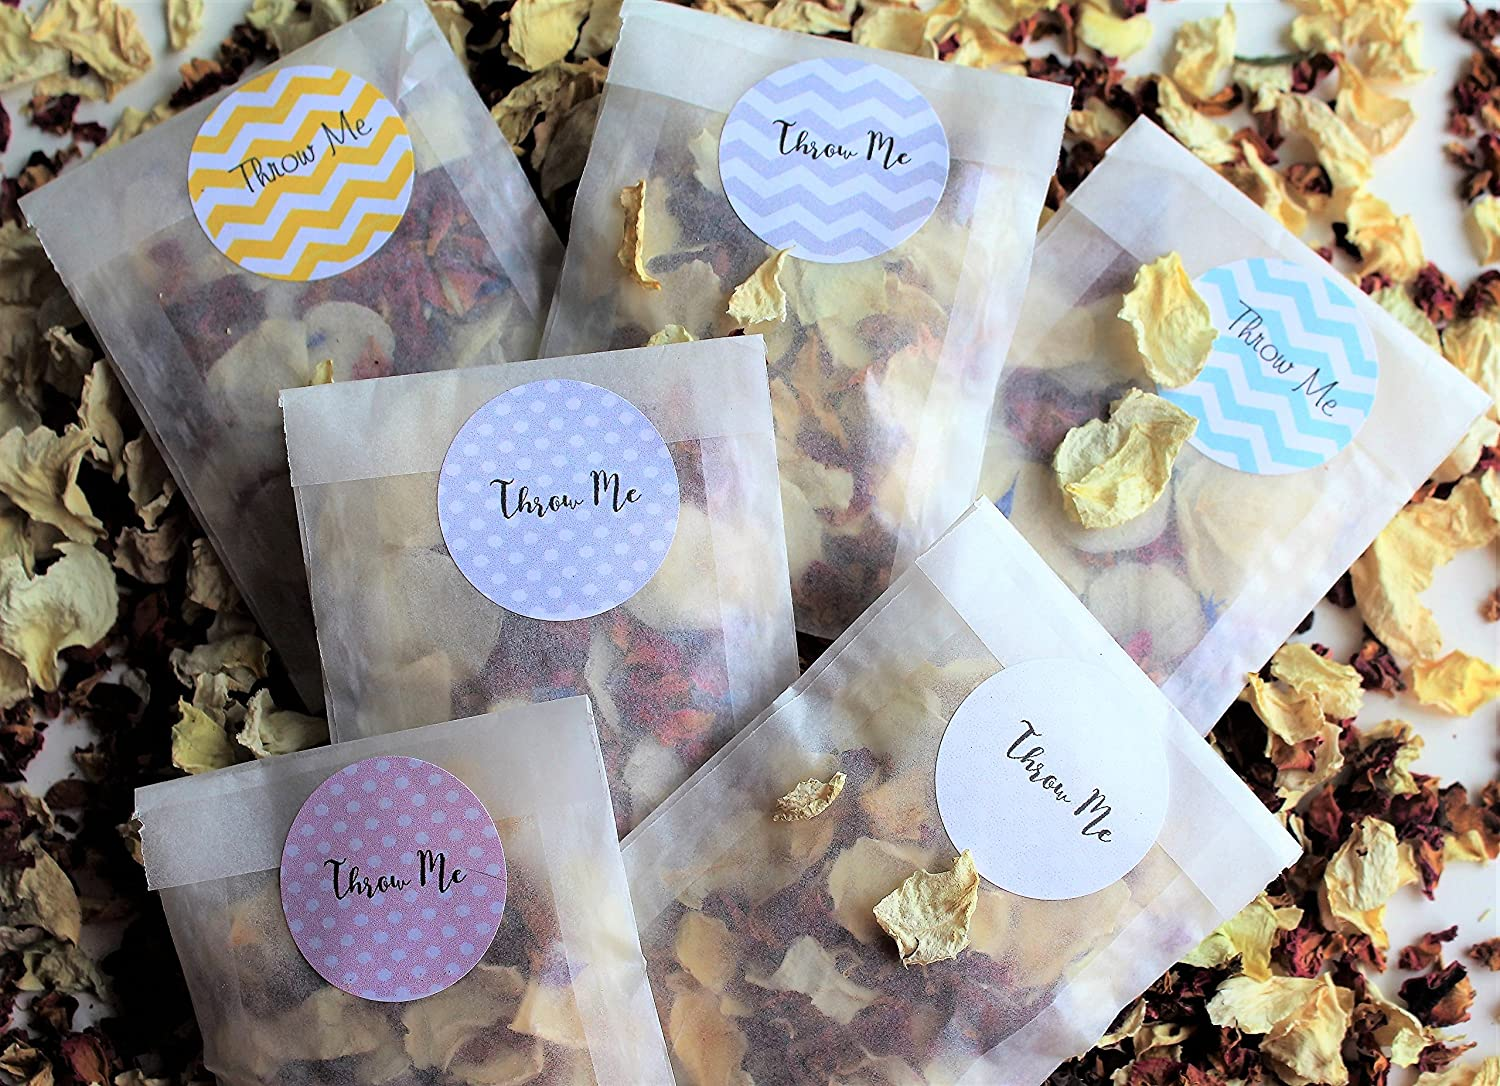 flower biodegradable petals-gold throw me Pale pink /& white wedding confetti